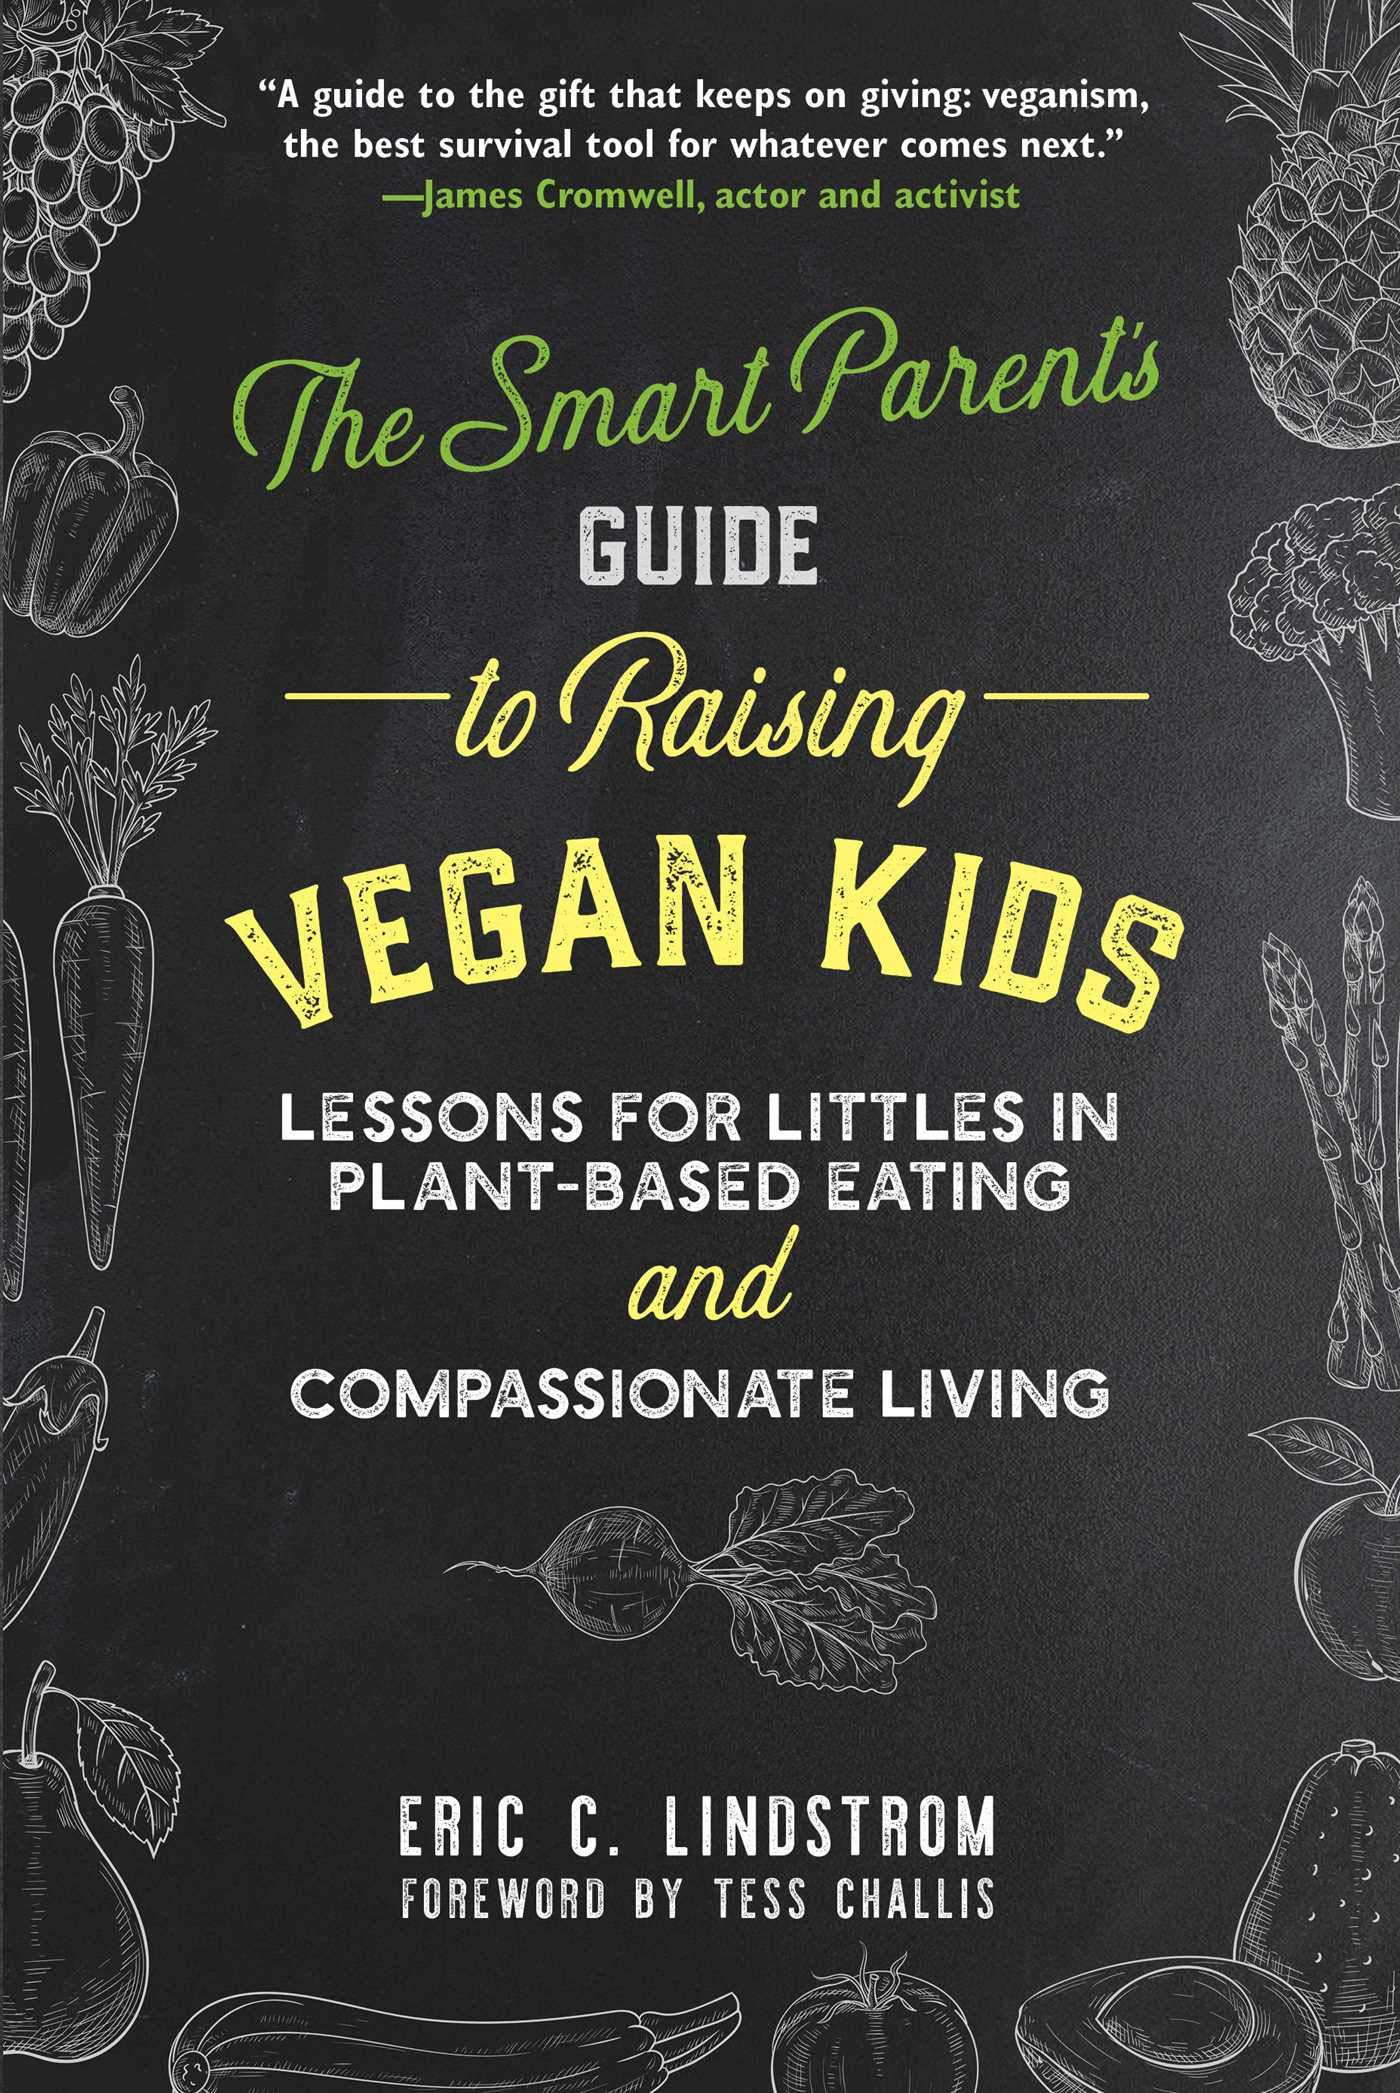 Image OfThe Smart Parent's Guide To Raising Vegan Kids: Lessons For Littles In Plant-Based Eating And Compassionate Living